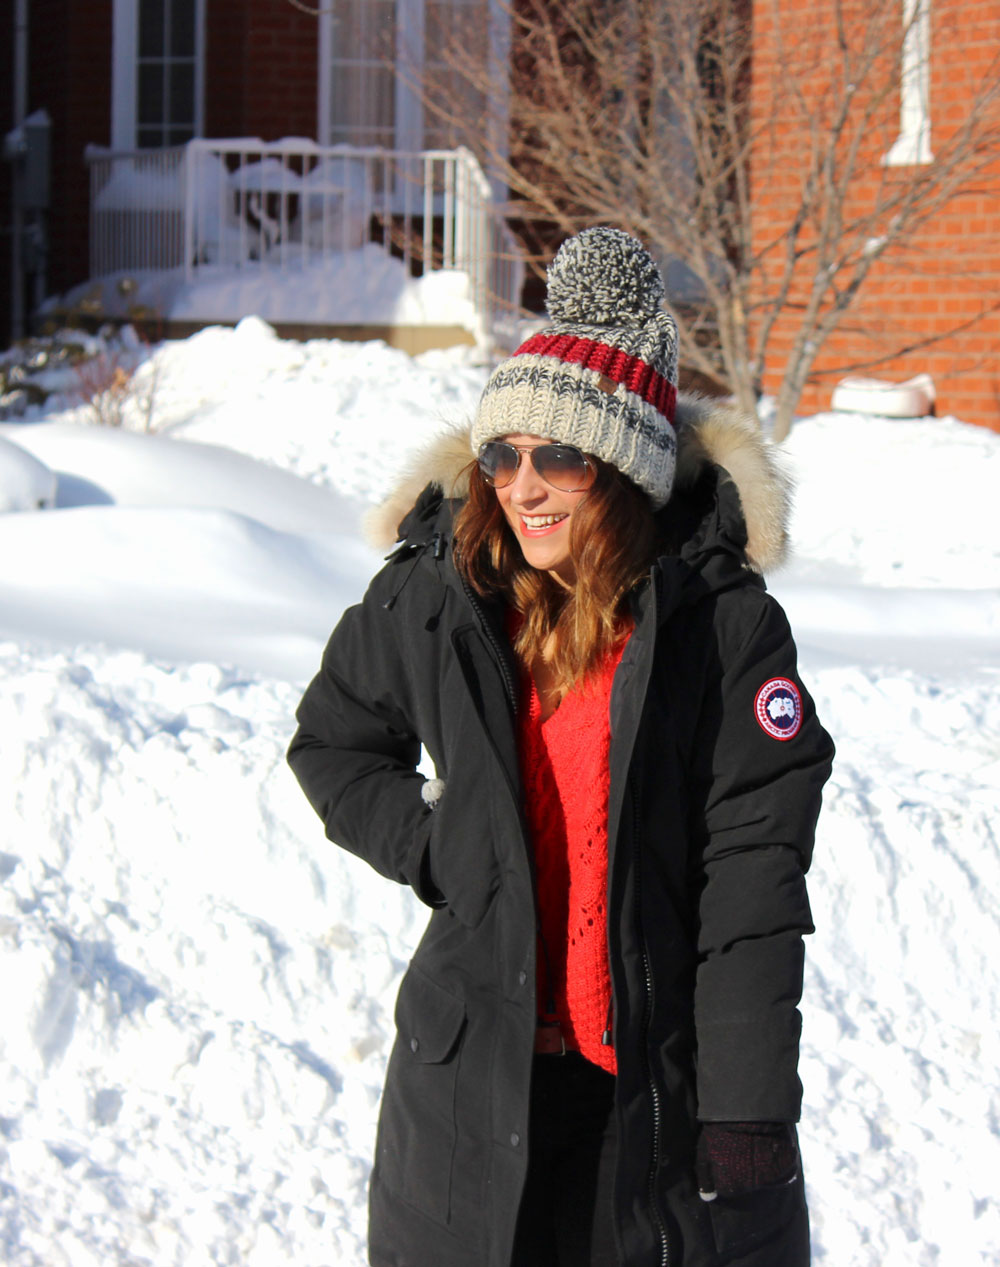 What to wear to stay warm in winter - Canada Goose Jacket and Chunky Beanie